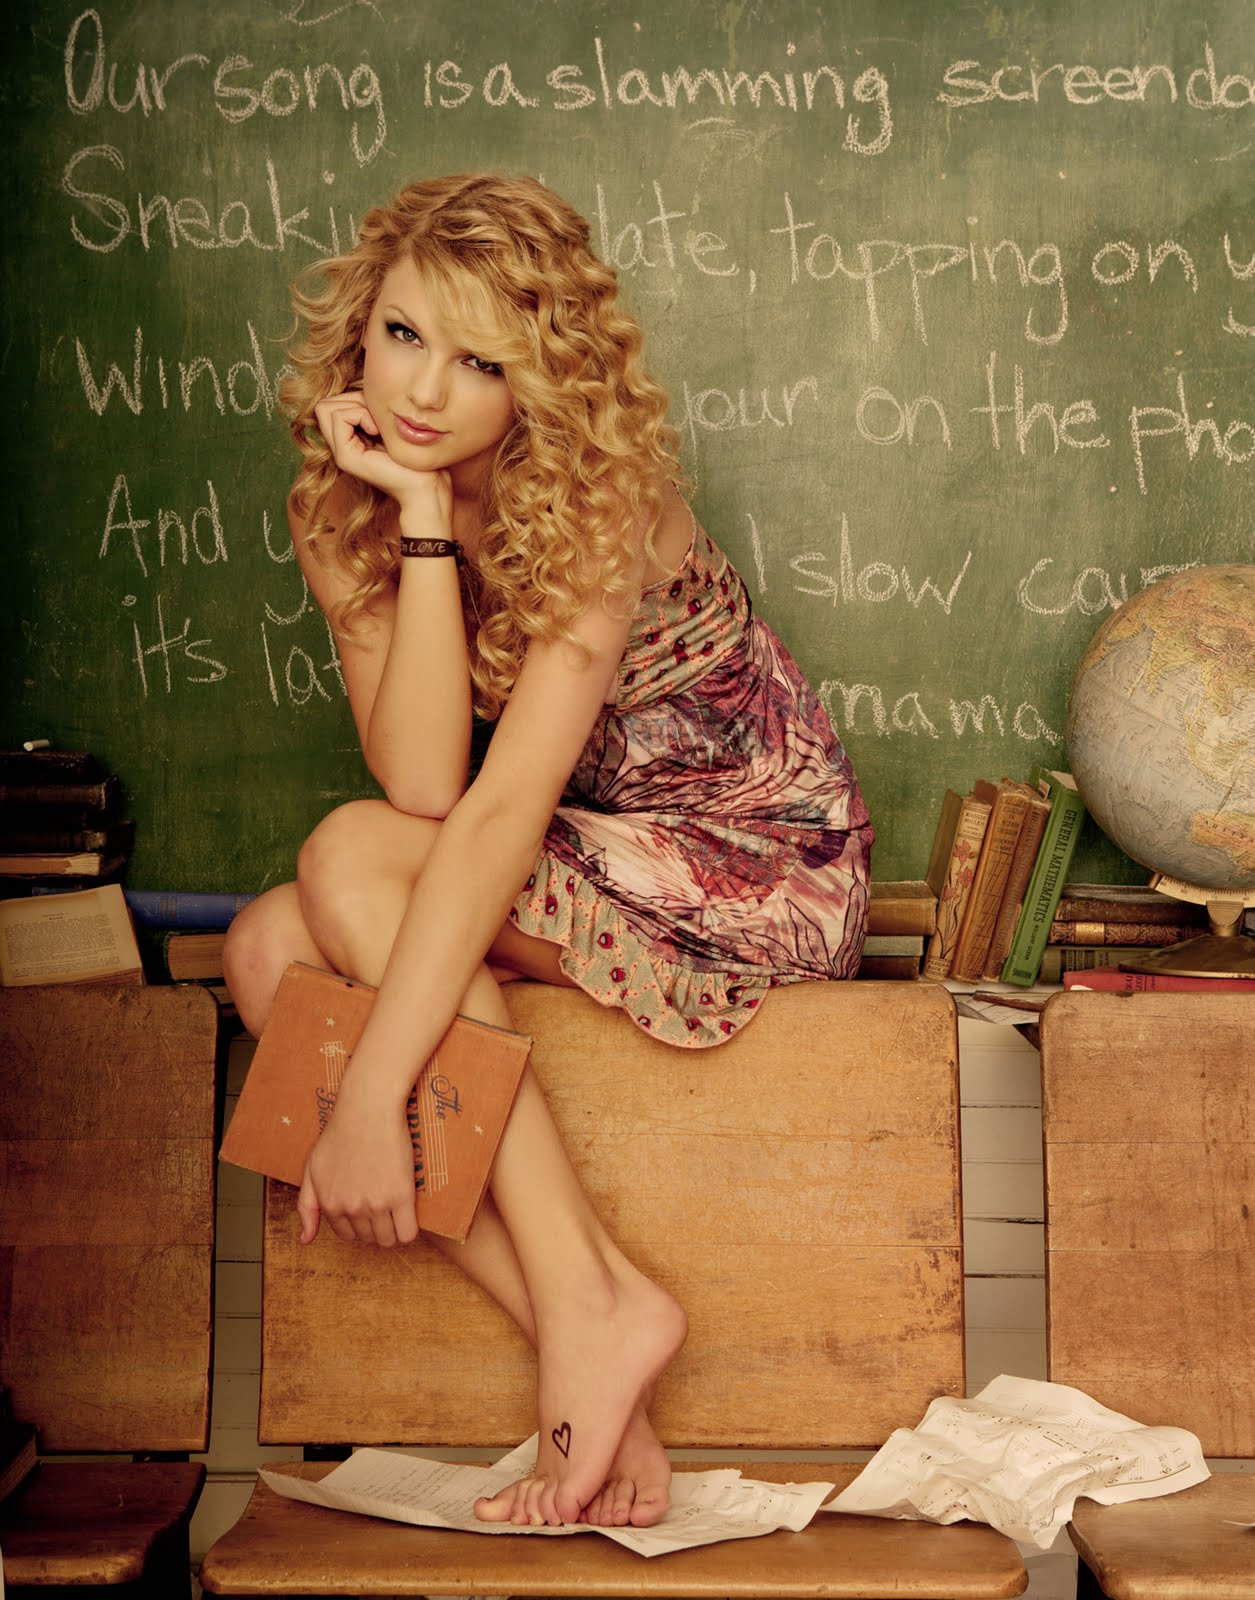 http://1.bp.blogspot.com/_-1GM7VDiWKE/TBBGRg1Q2vI/AAAAAAAACu0/LP3au3QIuNA/s1600/Cute+Taylor+Swift+Teaching+A+Class.jpg